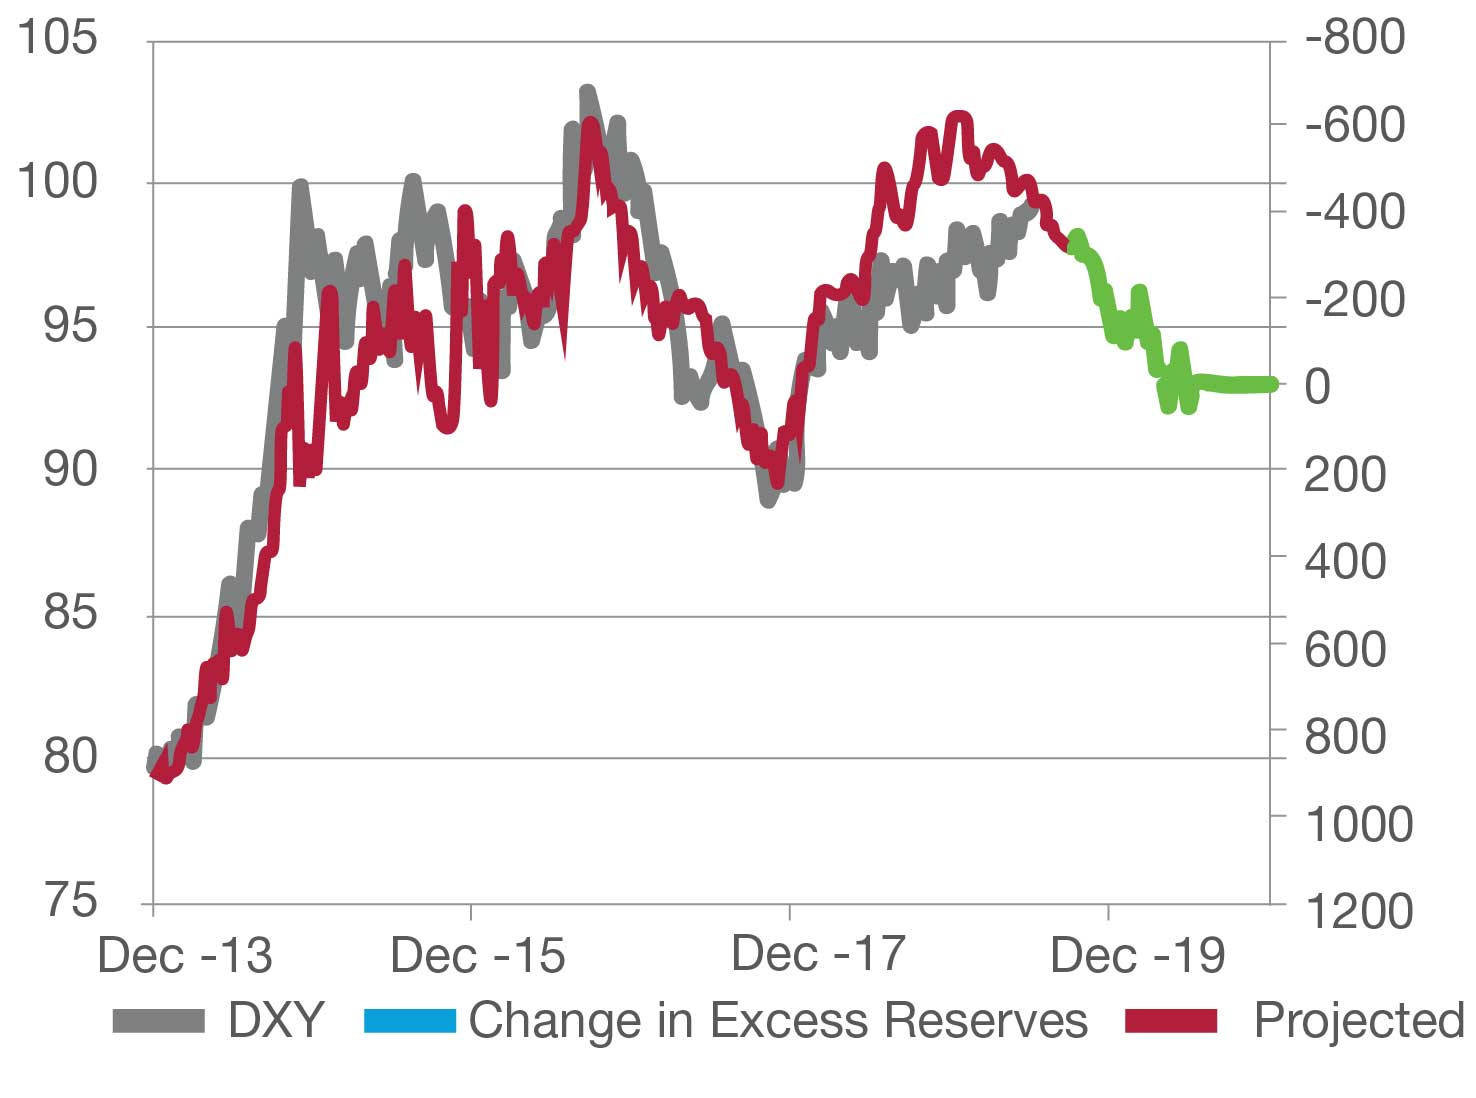 DXY expected to weaken